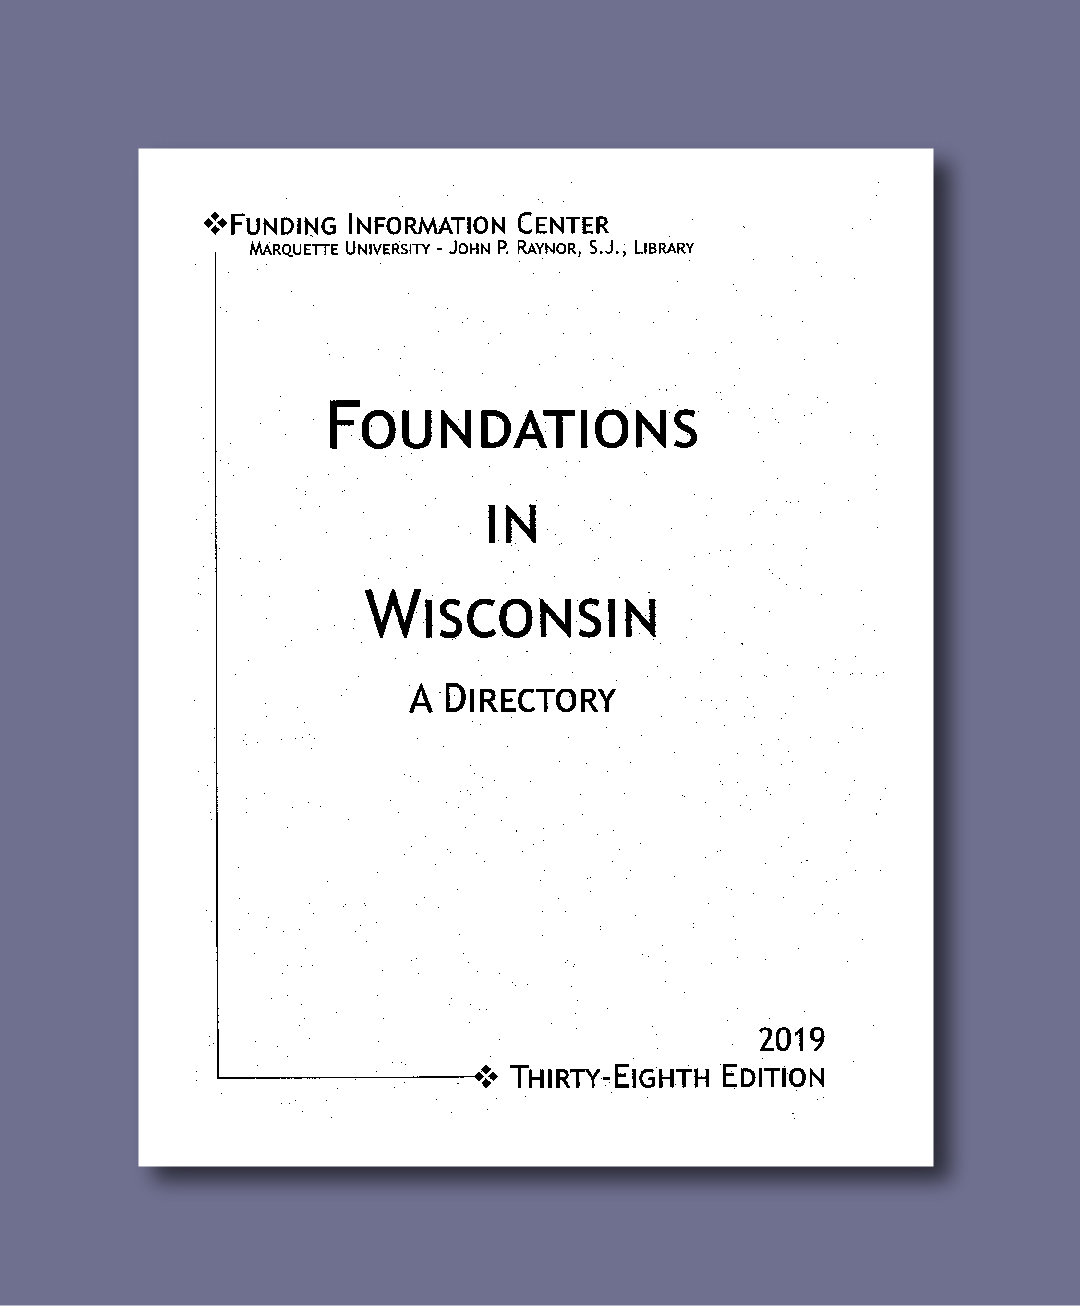 Cover of the 2019 Directory